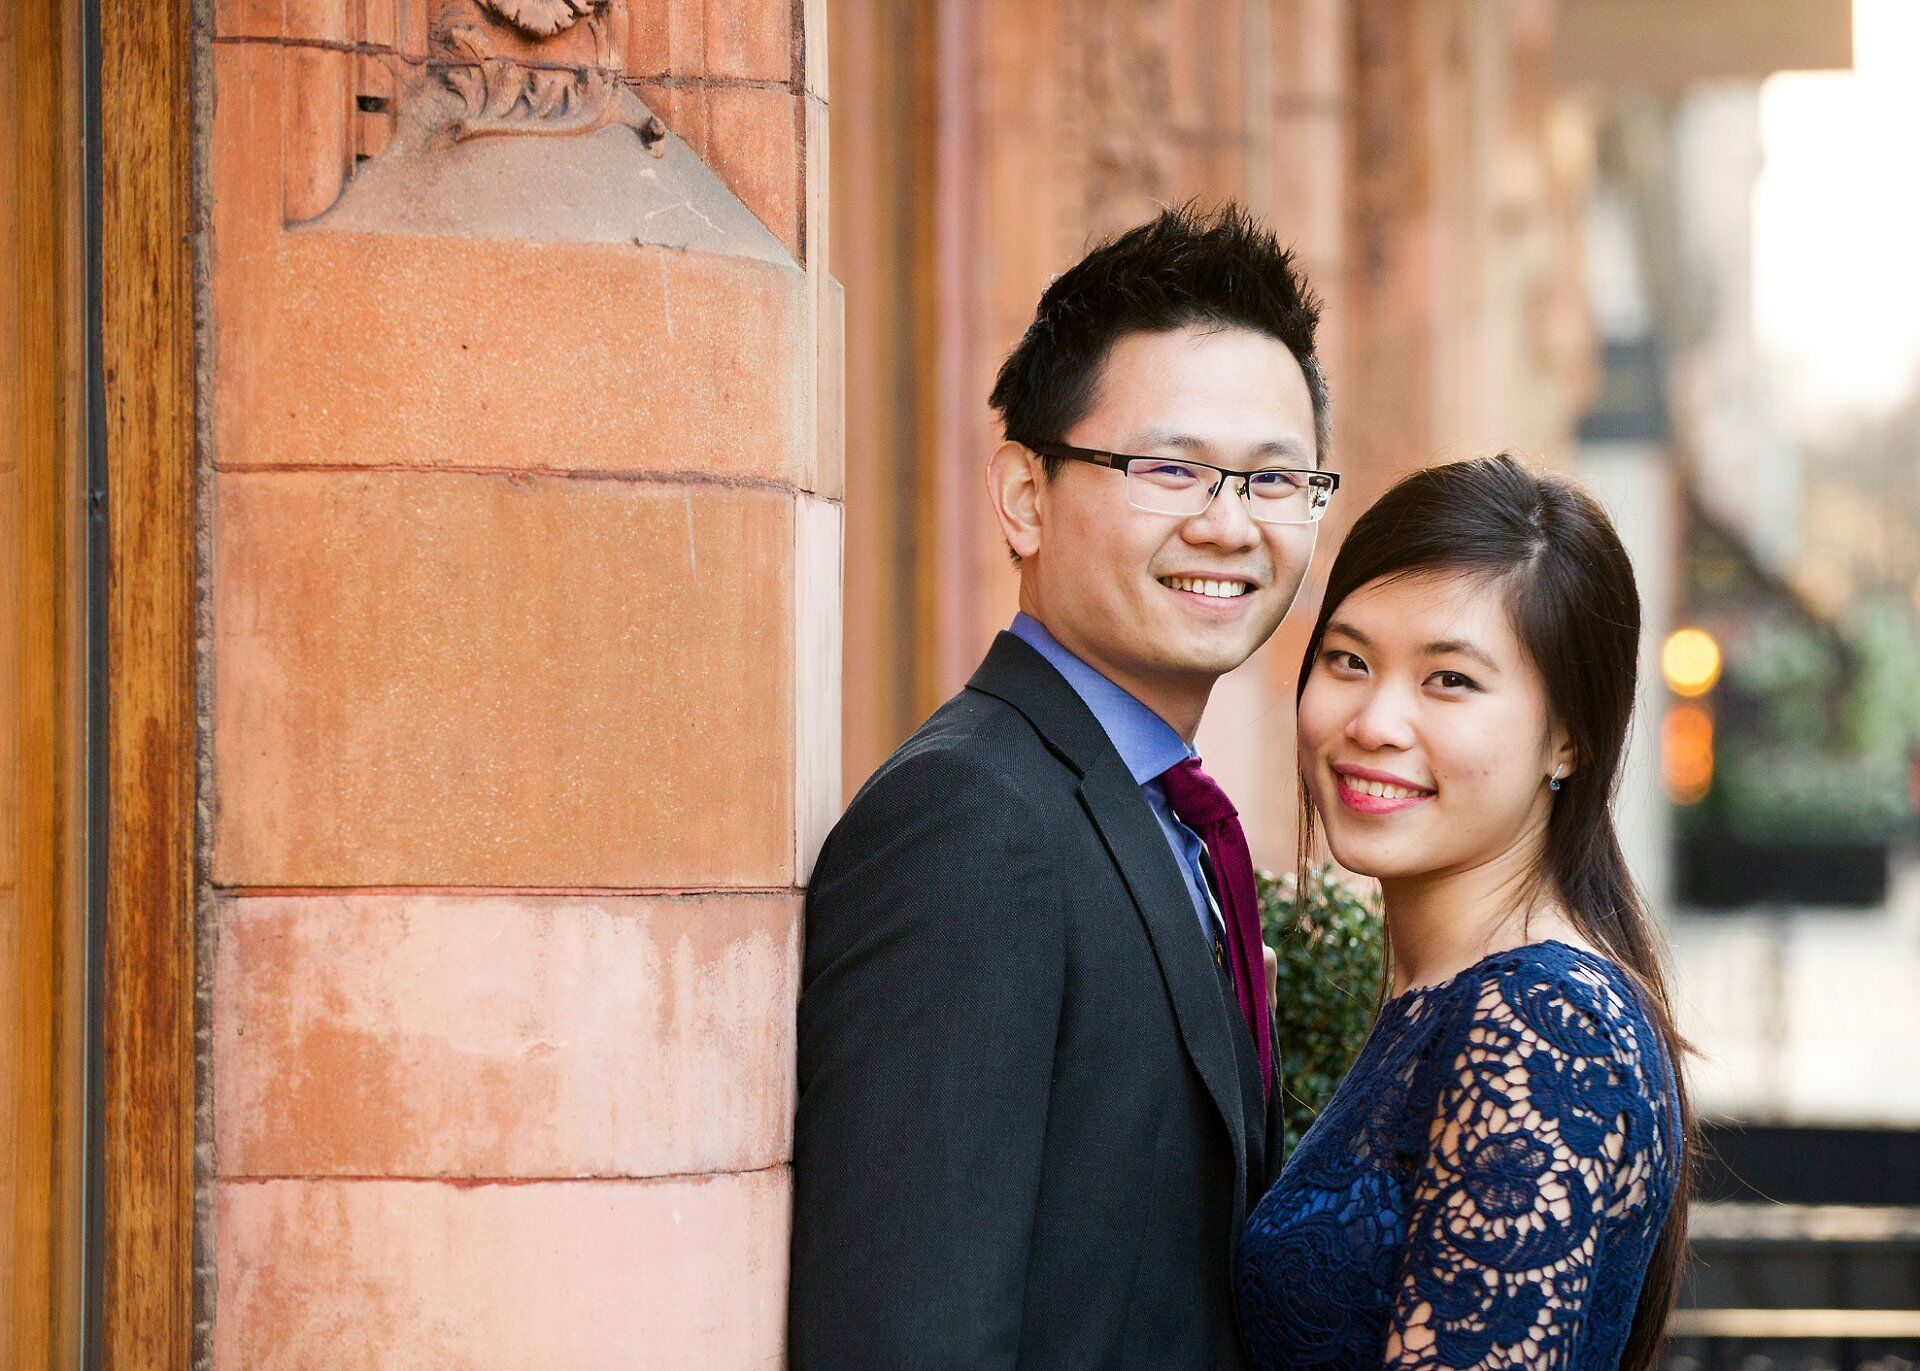 london wedding photographer emma duggan using westminster red brick buildings for bride and groom photos